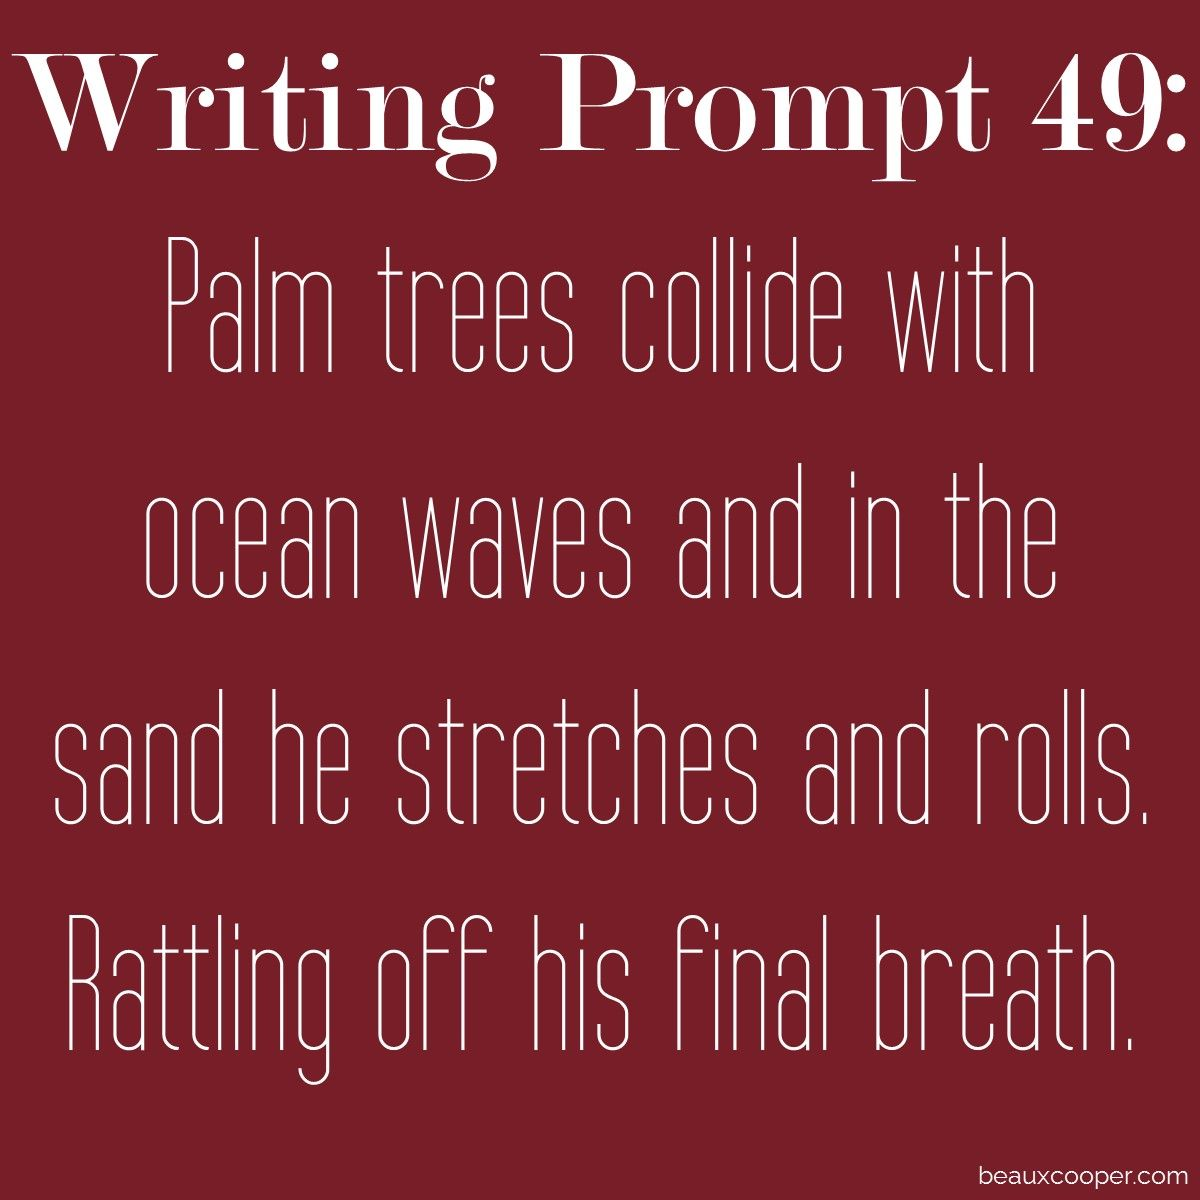 writing prompt forty-nine | writing prompts | pinterest | writing